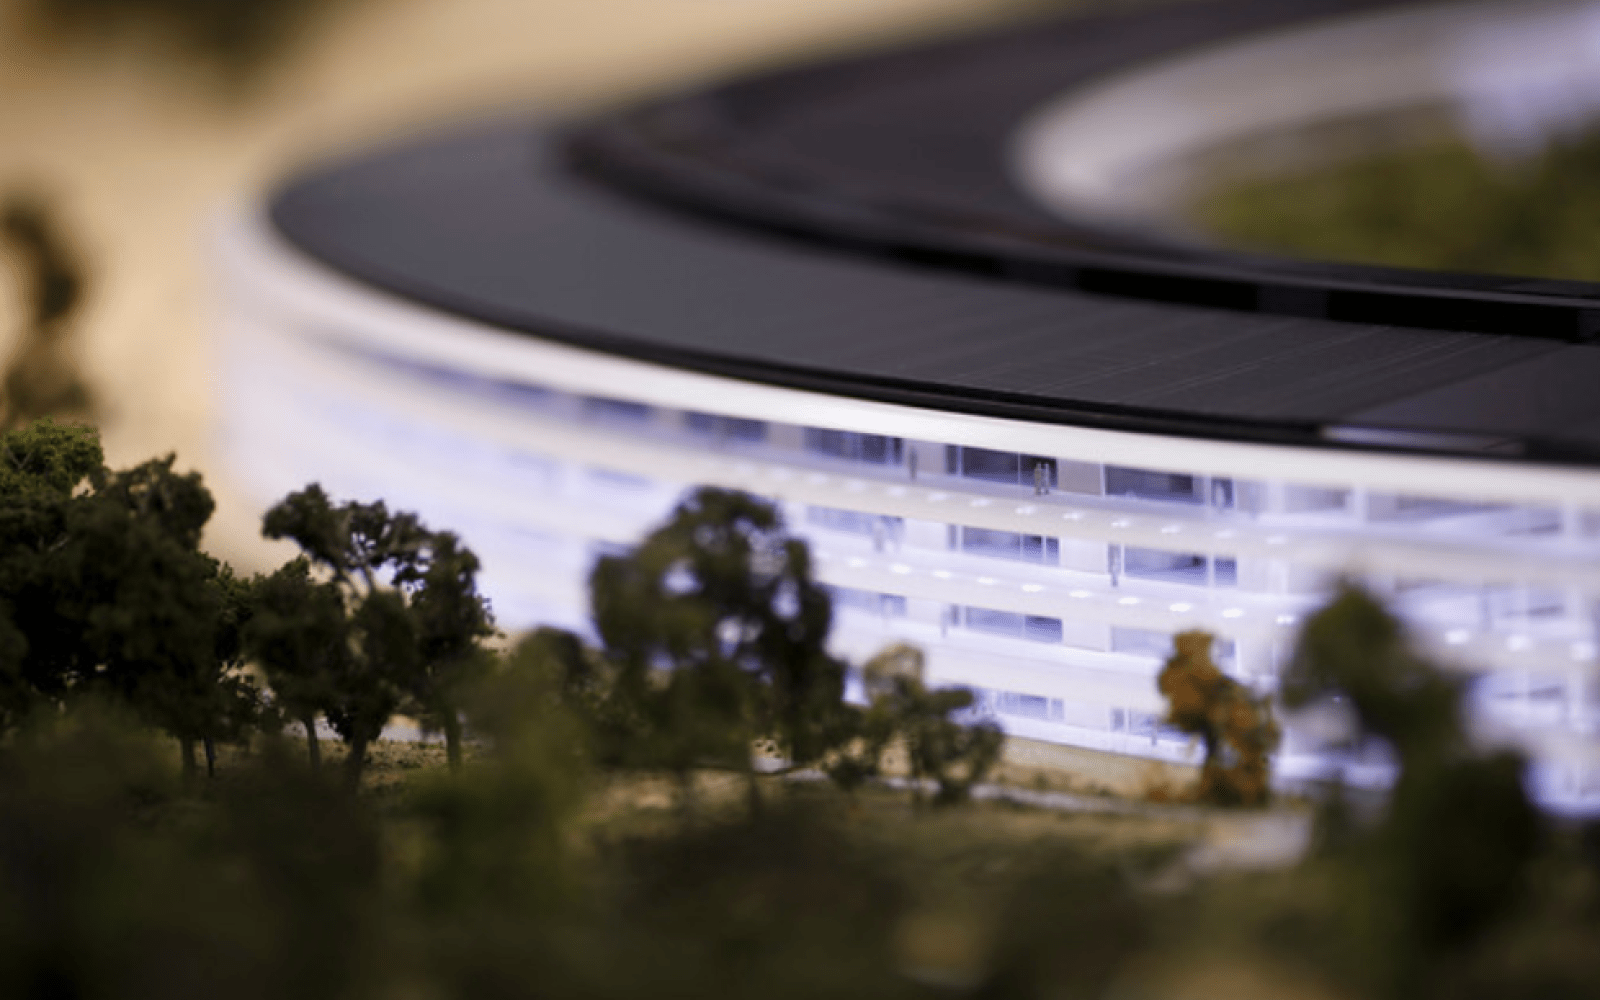 Apple's Cupertino 'spaceship' campus given go-ahead (final rubber-stamp vote in Nov)